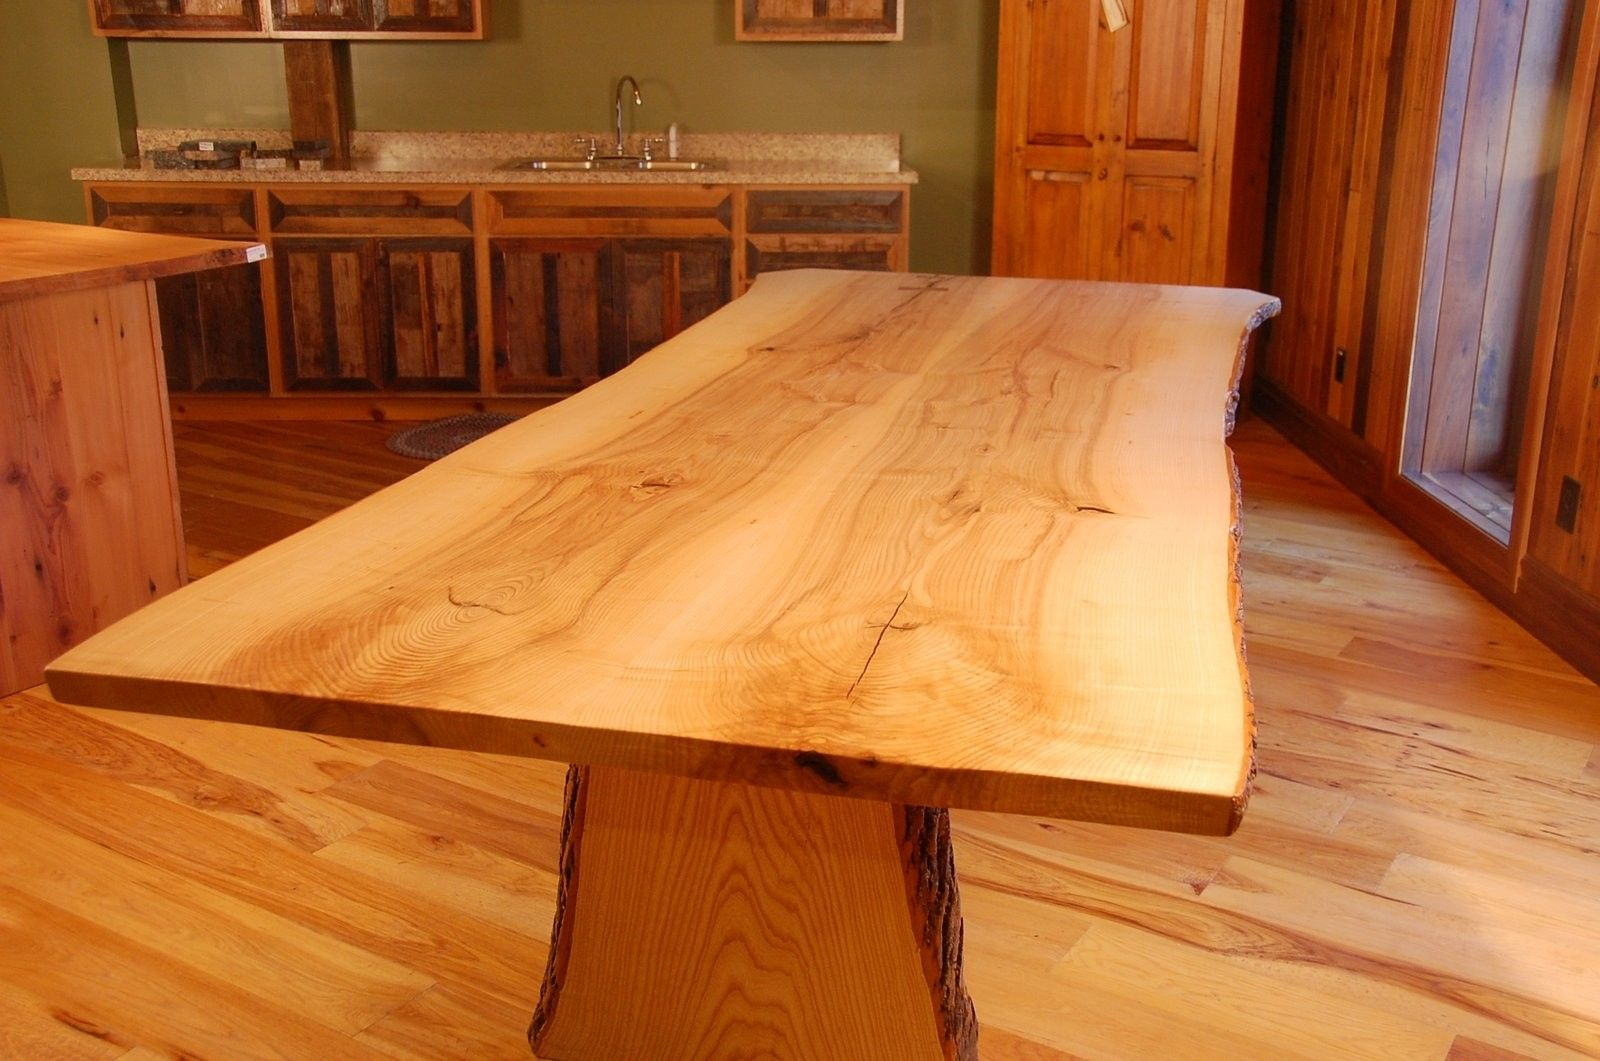 Miraculous Live Edge Ash Slab Dining Table Download Free Architecture Designs Rallybritishbridgeorg